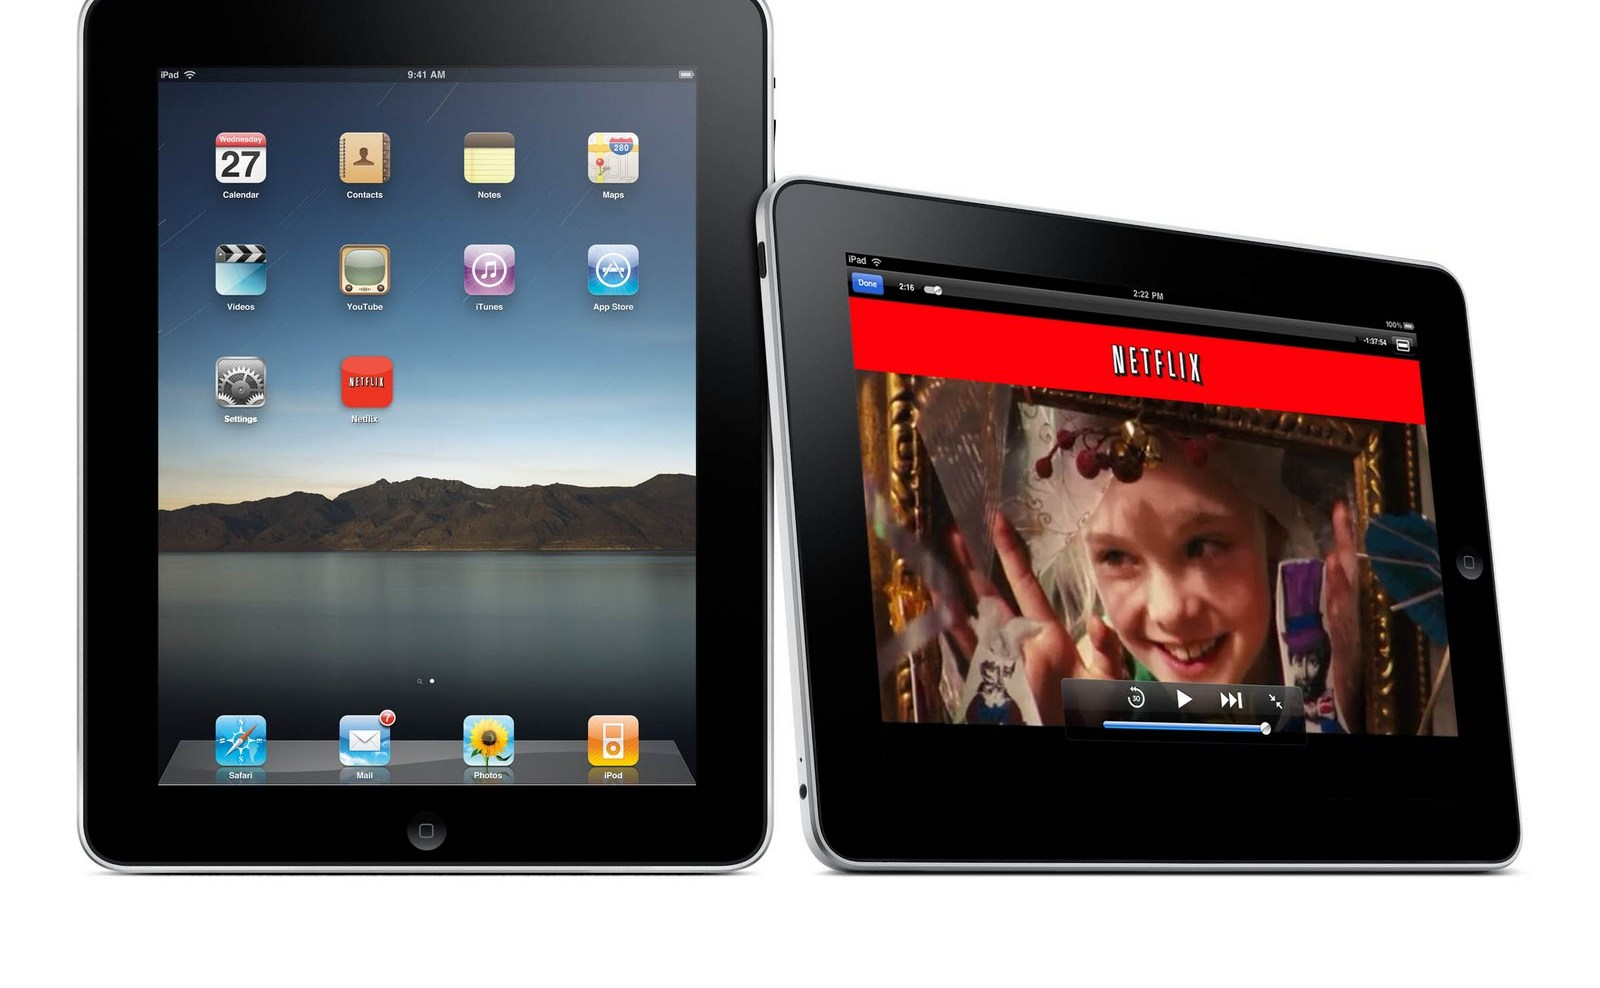 How to Play MKV, FLV, Avi, Divx and other Video Format on iPad